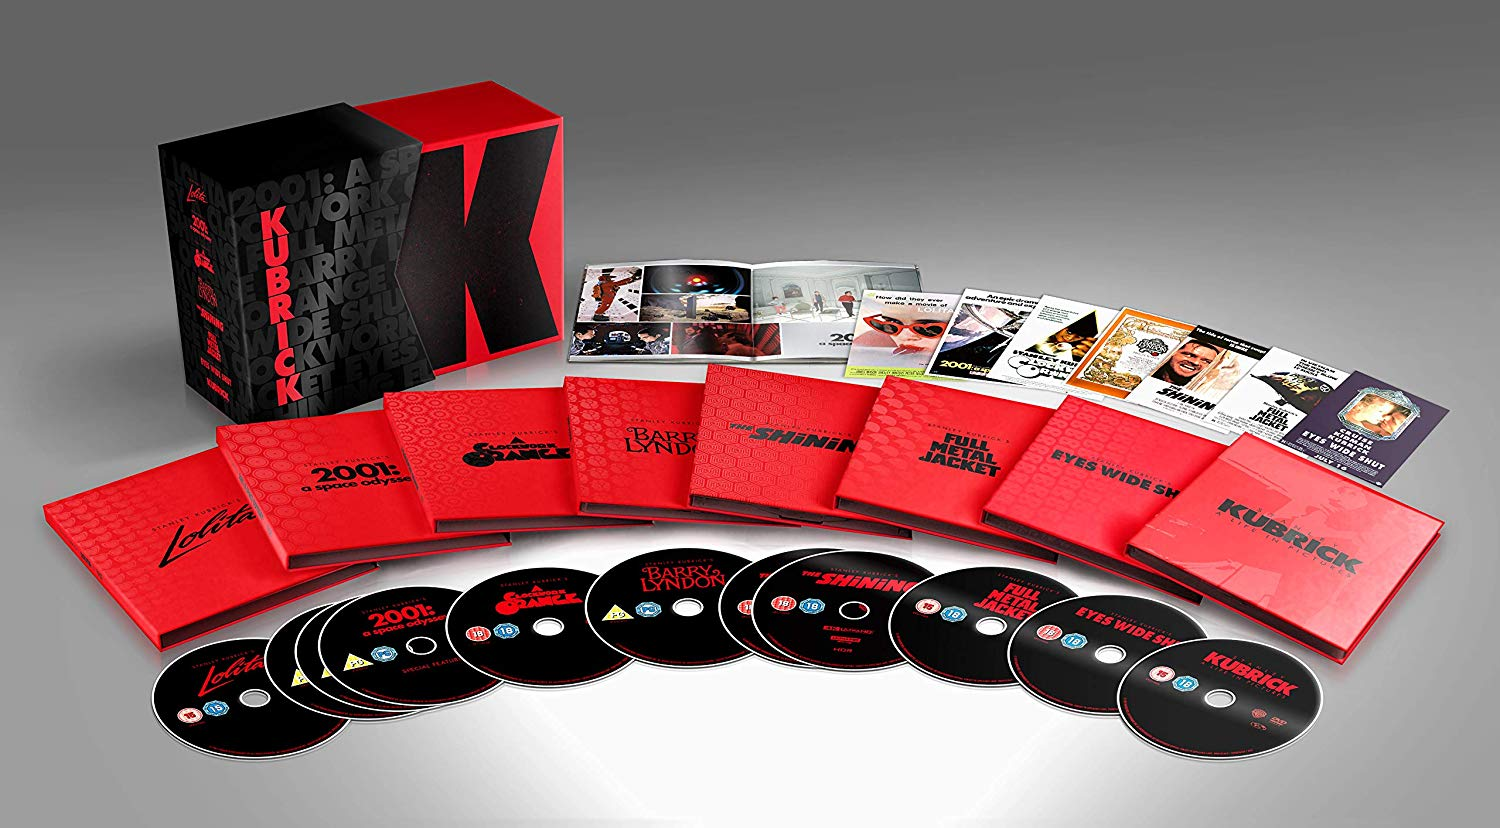 Stanley Kubrick Blu Ray collection review the shining clockwork orange Lolita Full Metal Jacket 2001 a space odyssey eyes wide shut